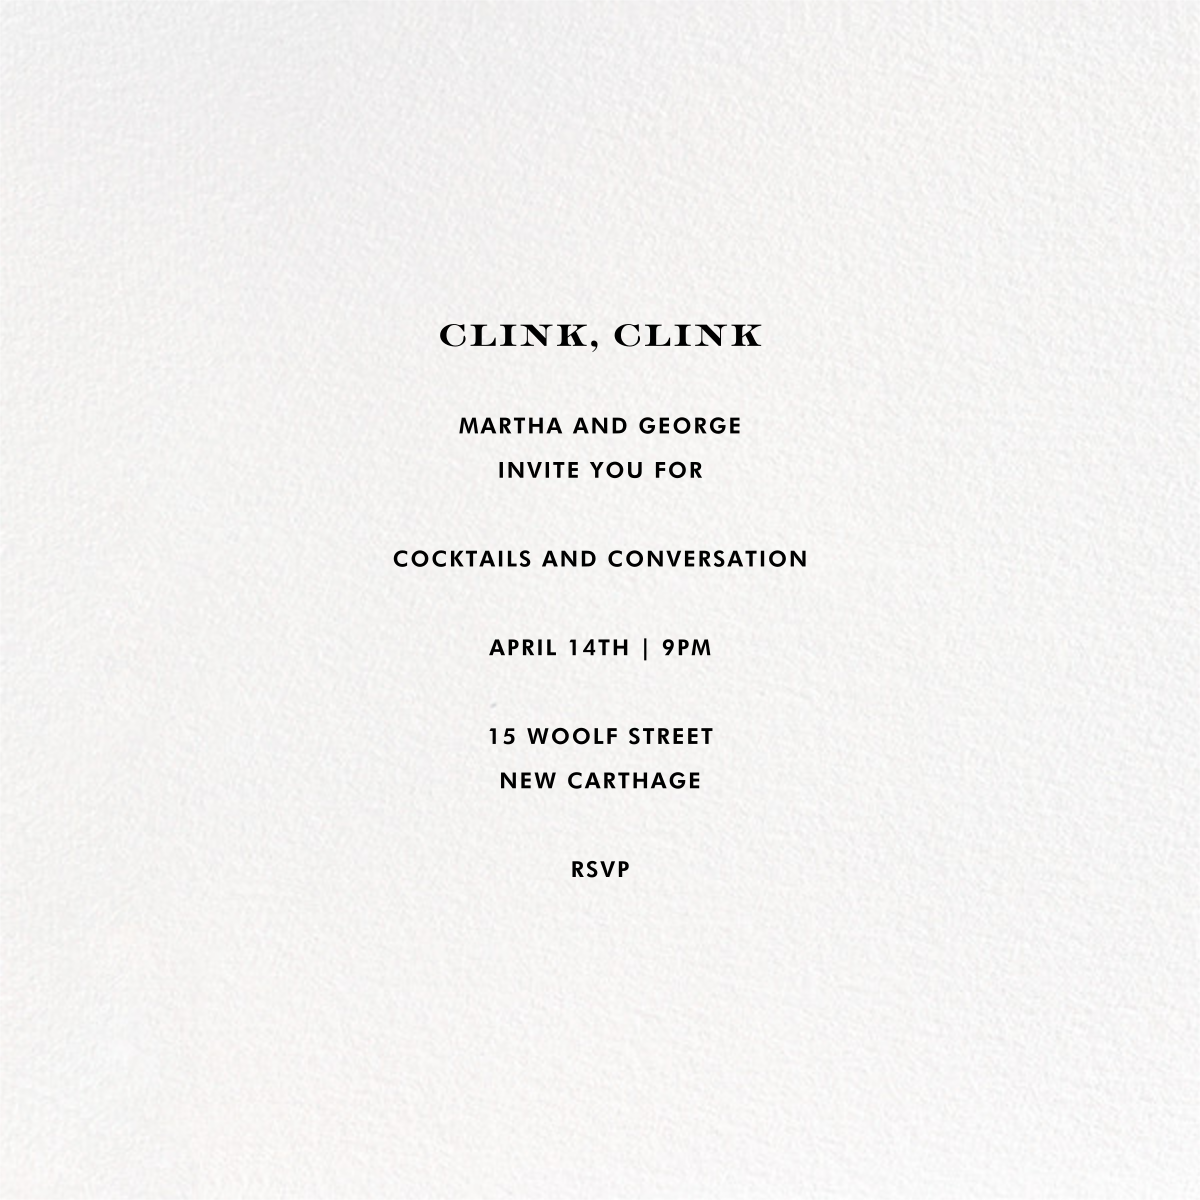 Pop Fizz Clink (Square) - White/Gold  - kate spade new york - Cocktail party - card back